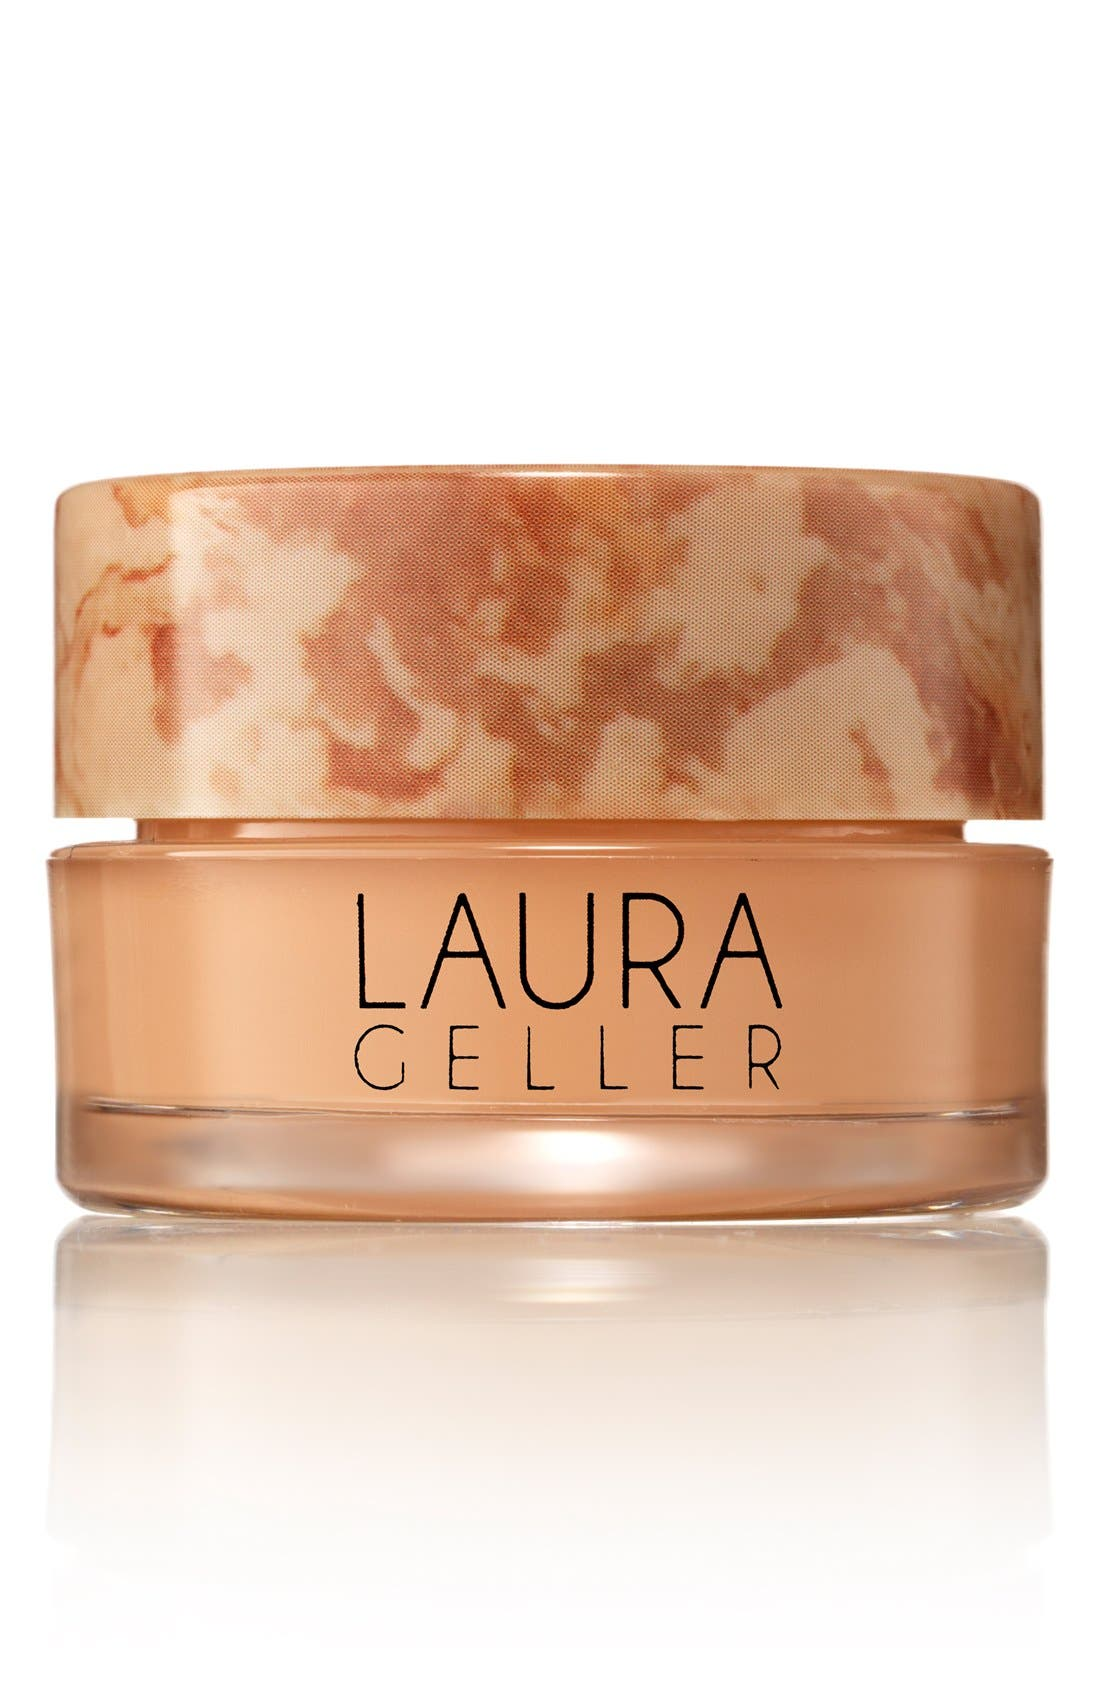 LAURA GELLER BEAUTY, Baked Radiance Cream Concealer, Main thumbnail 1, color, TAN